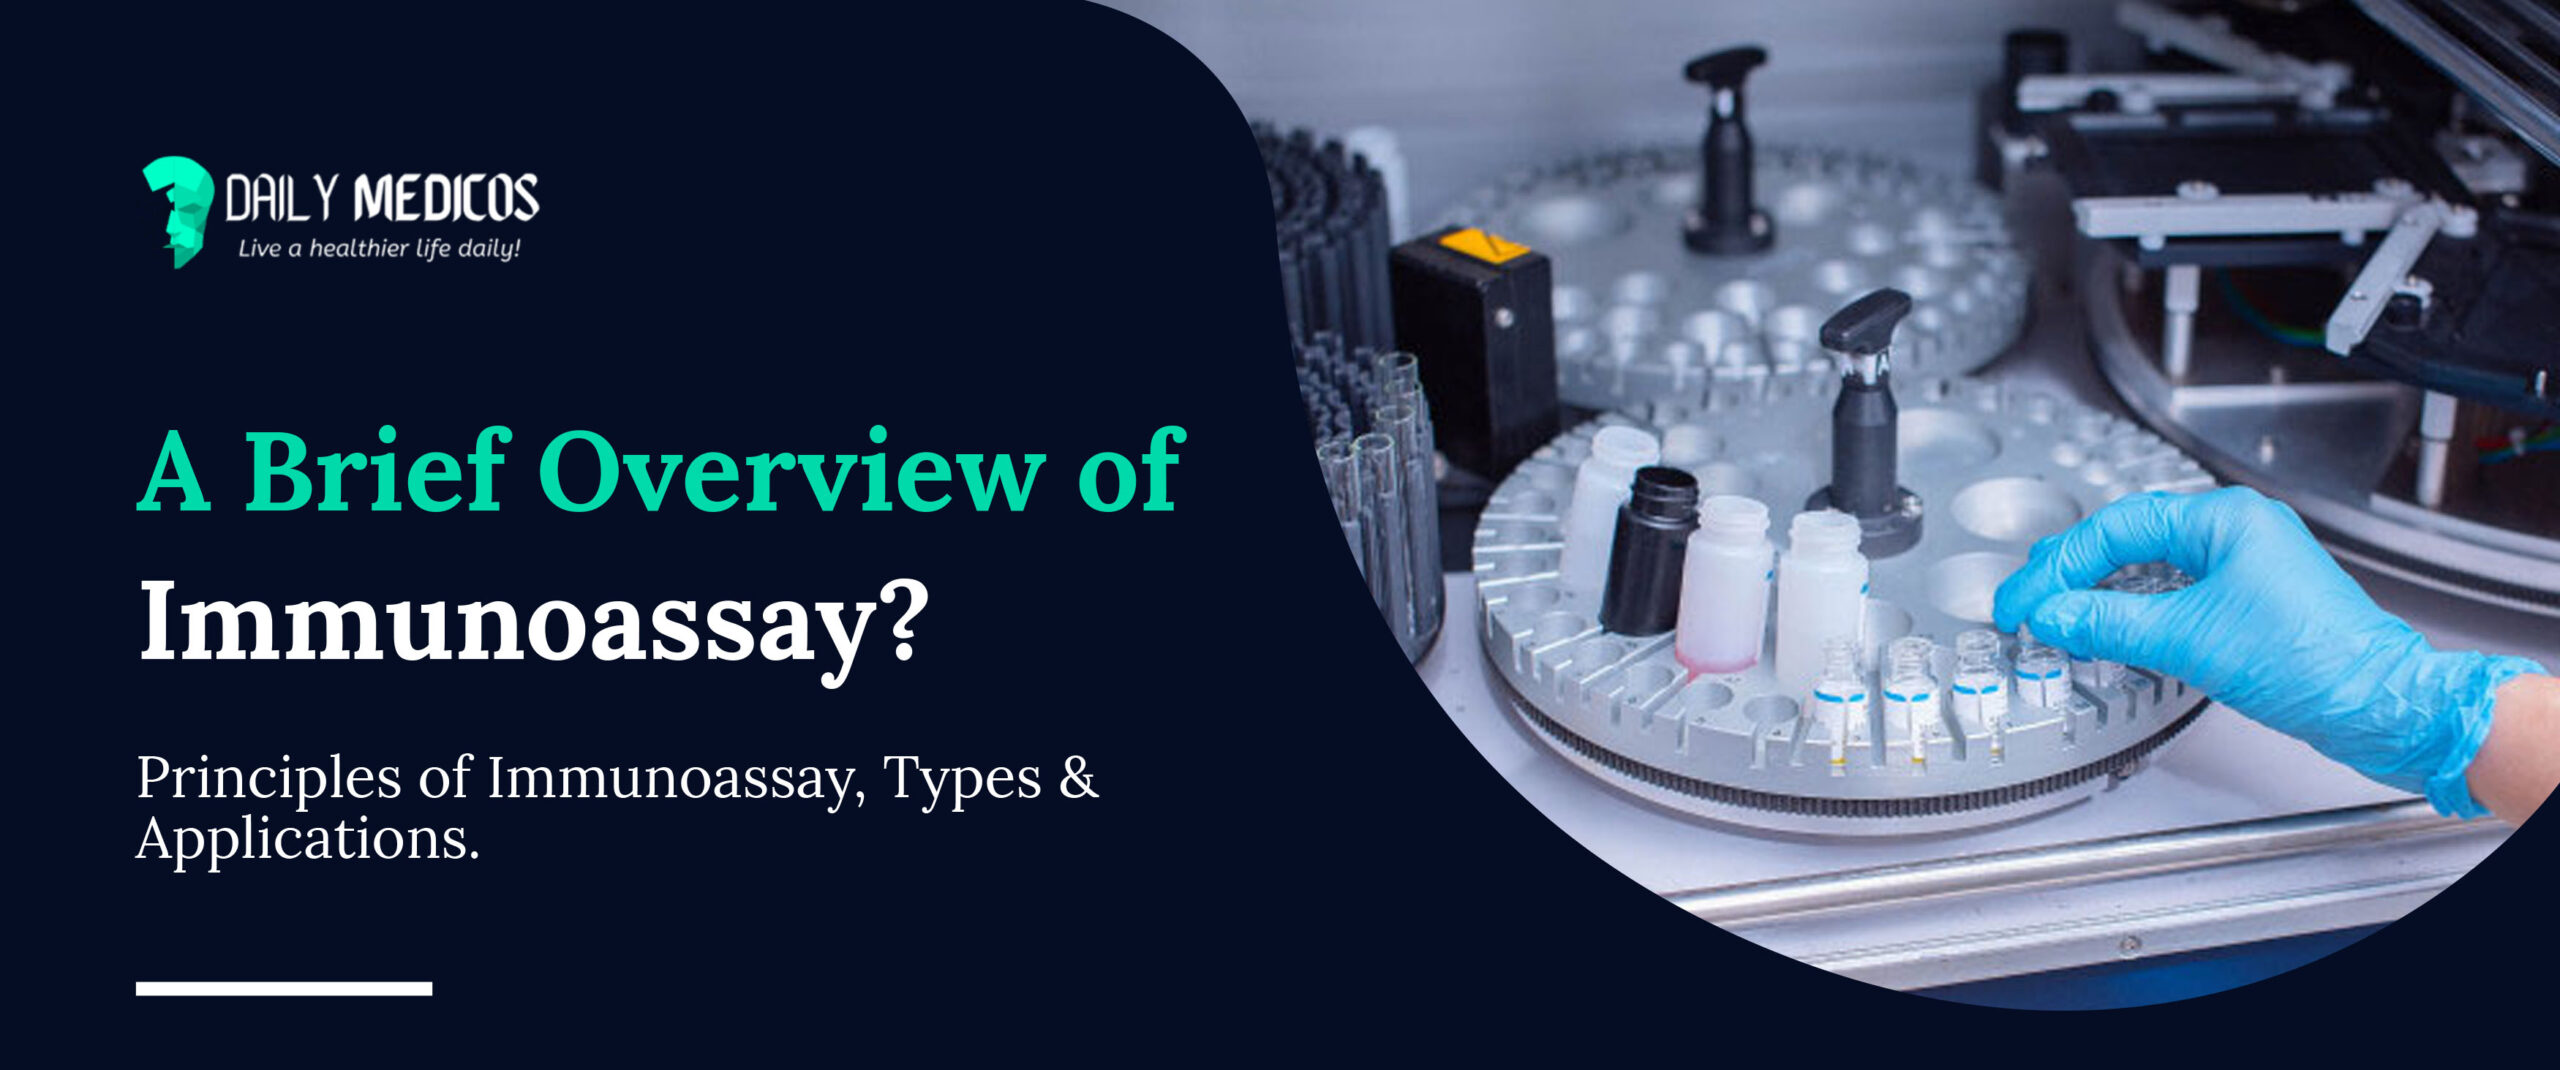 A Brief Overview of Immunoassay [Principles of Immunoassay, Types & Applications] 44 - Daily Medicos